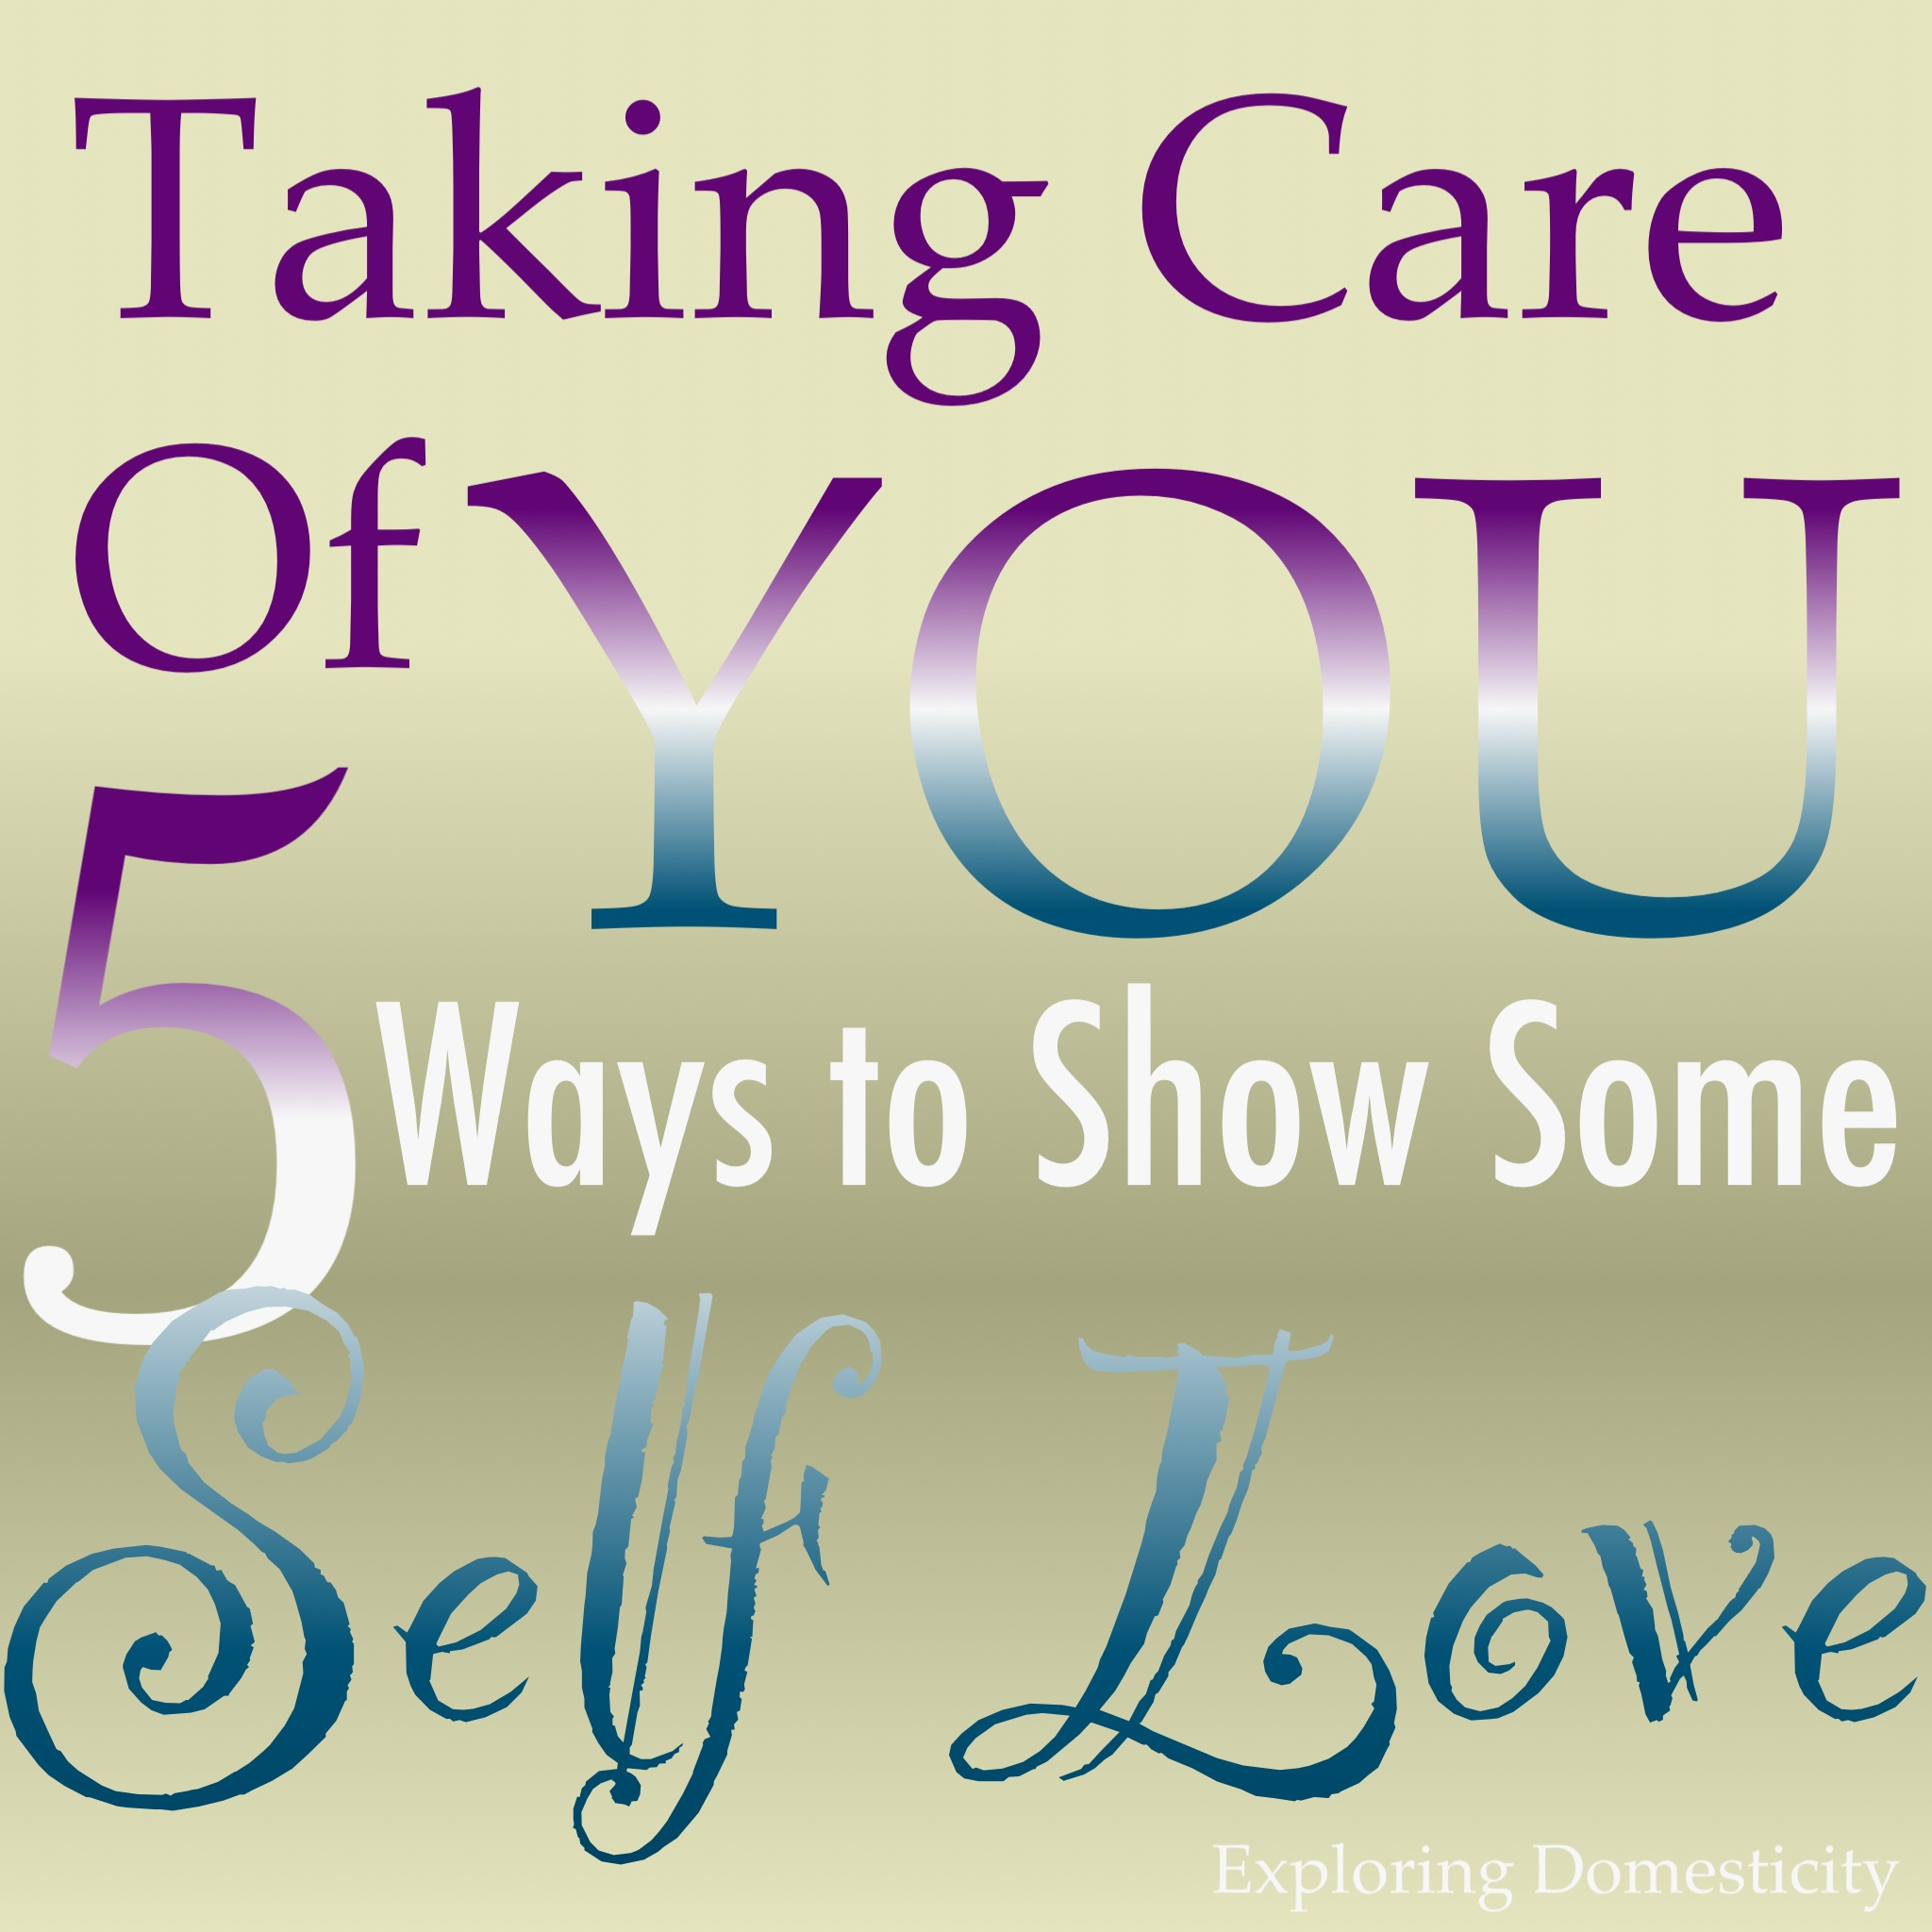 Taking Care of YOU: 5 ways to show some self-love